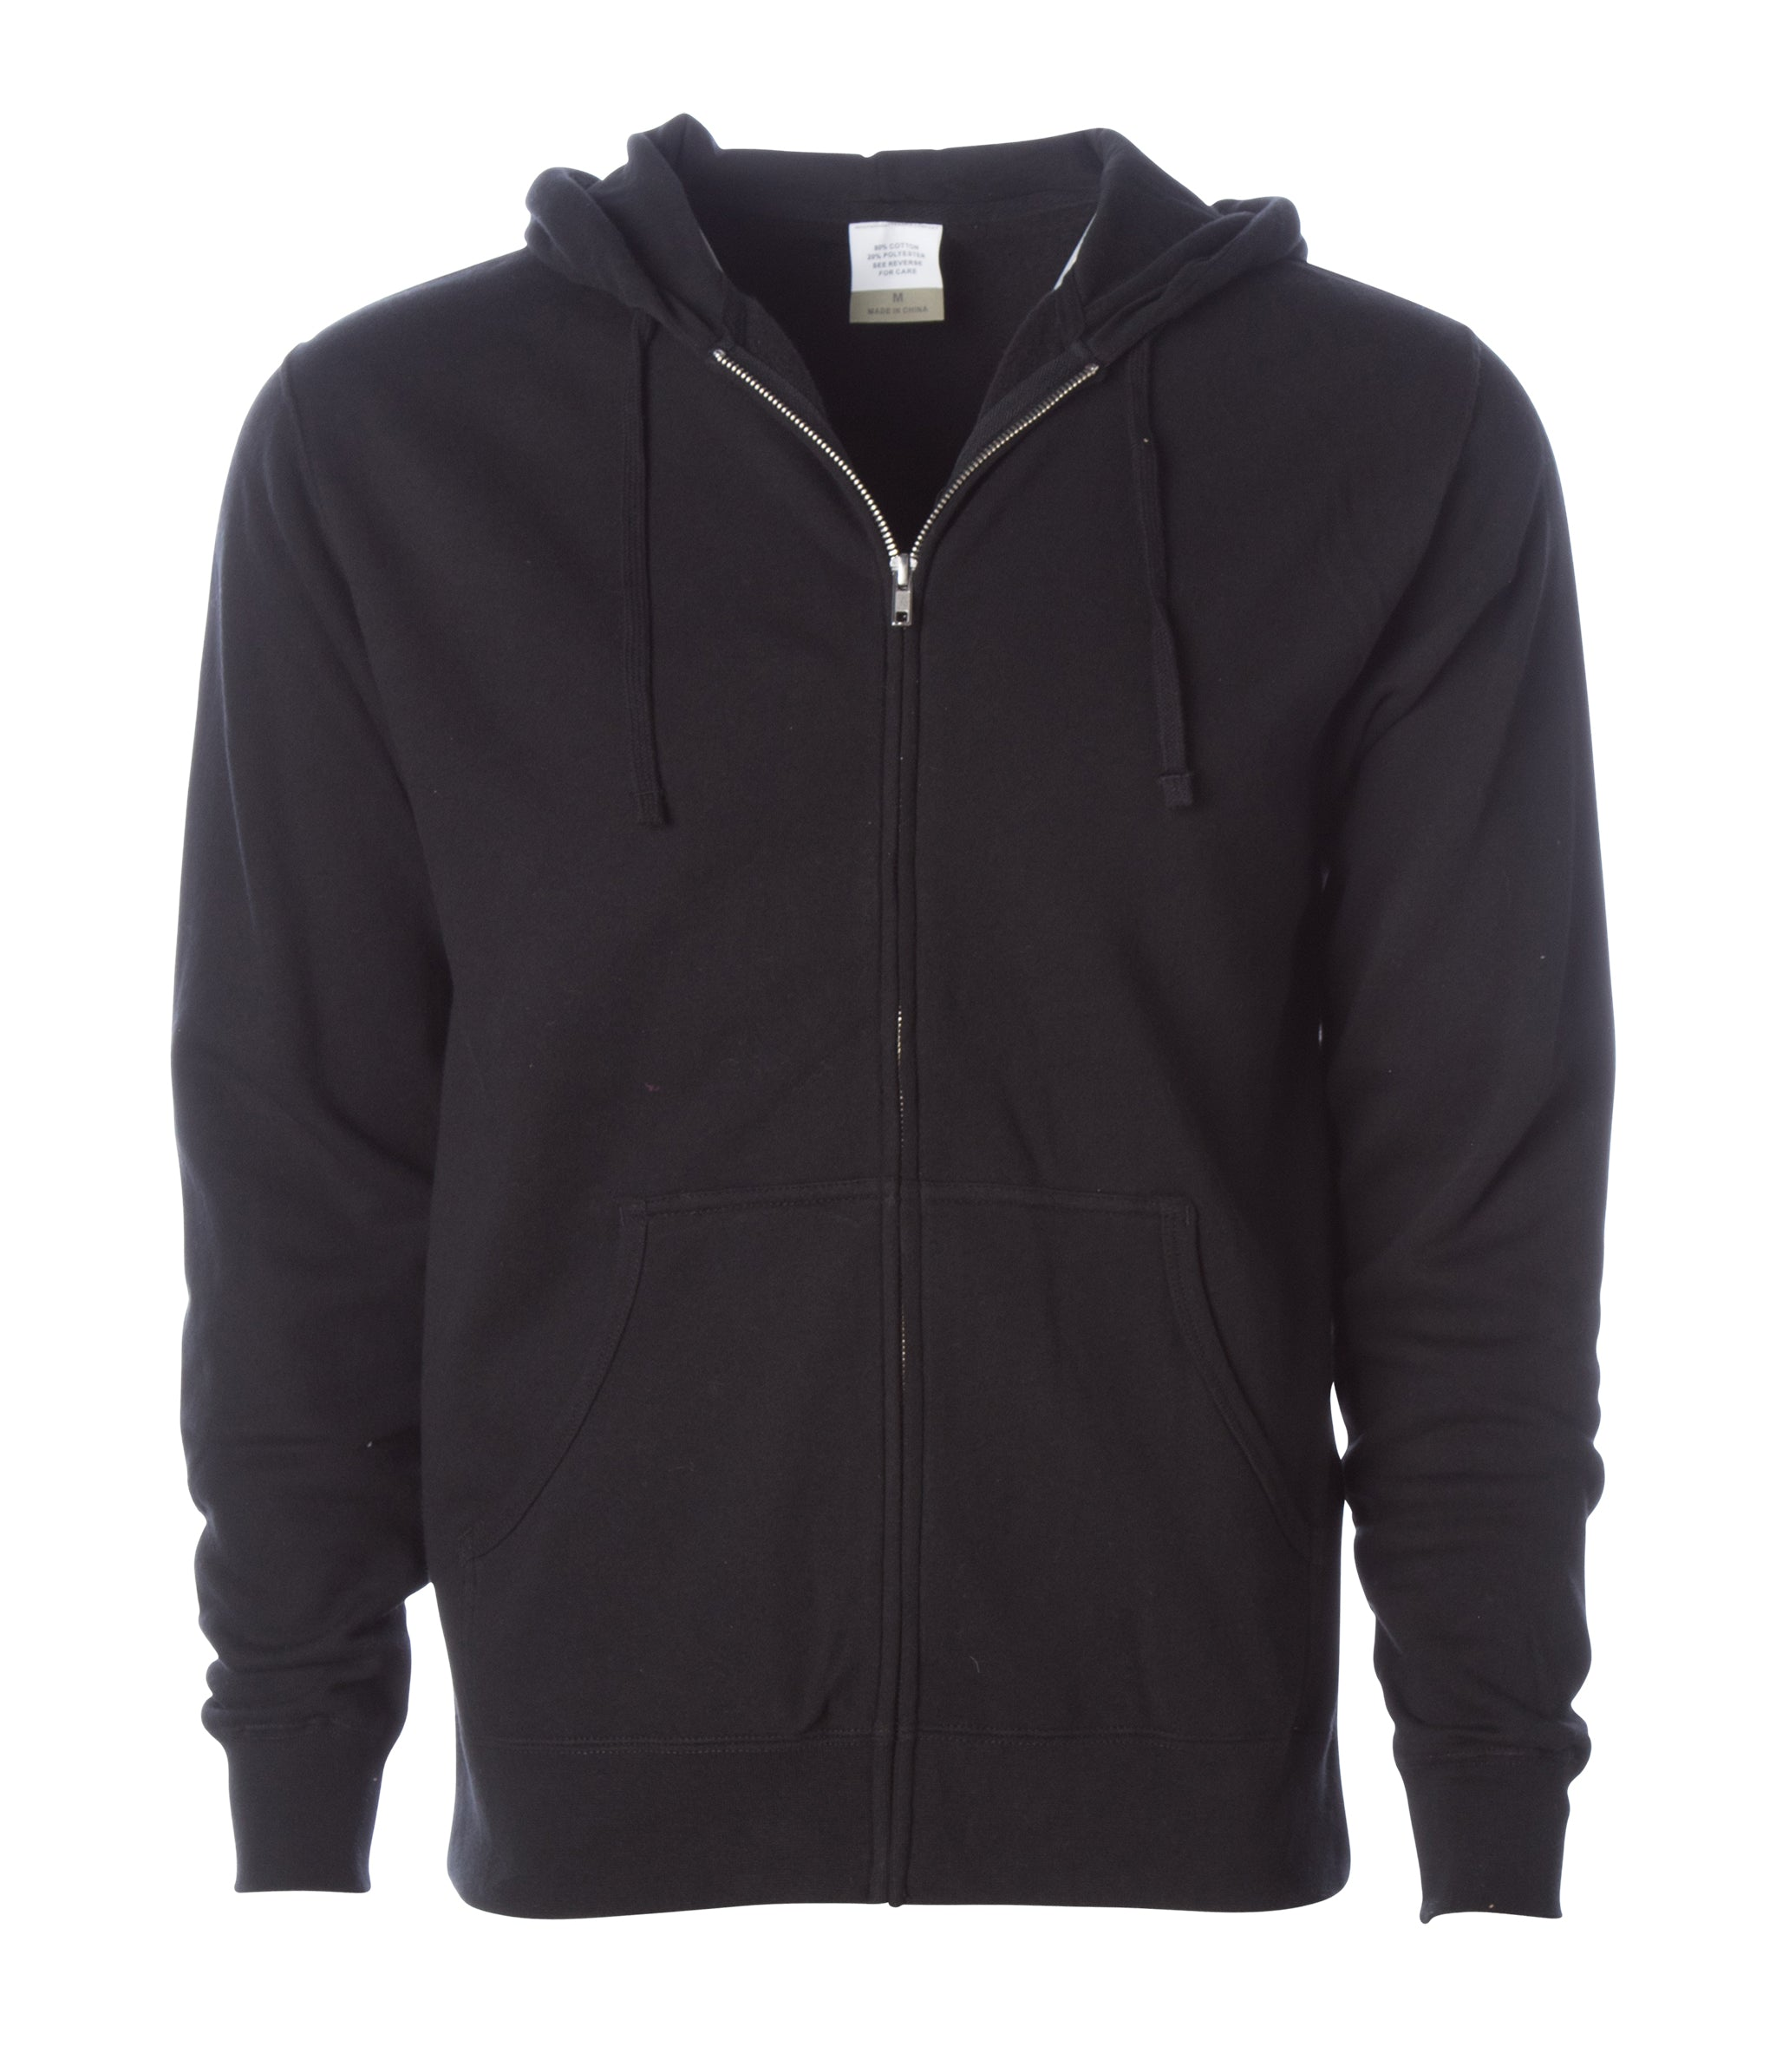 AFX4000Z Independent Trading Full-Zip Hooded Sweatshirt Charcoal Heather // L